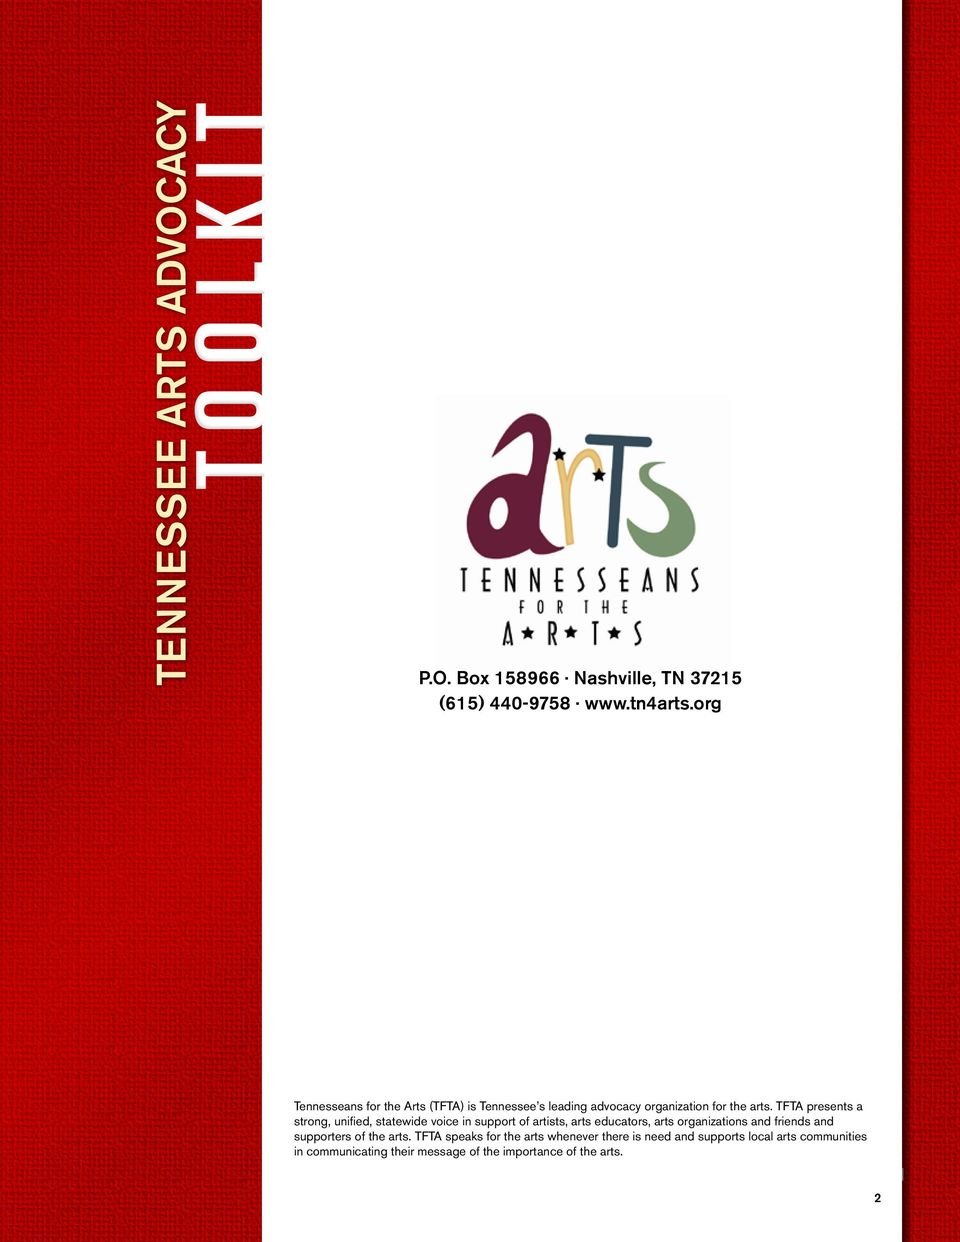 TFTA presents a strong, unified, statewide voice in support of artists, arts educators, arts organizations and friends